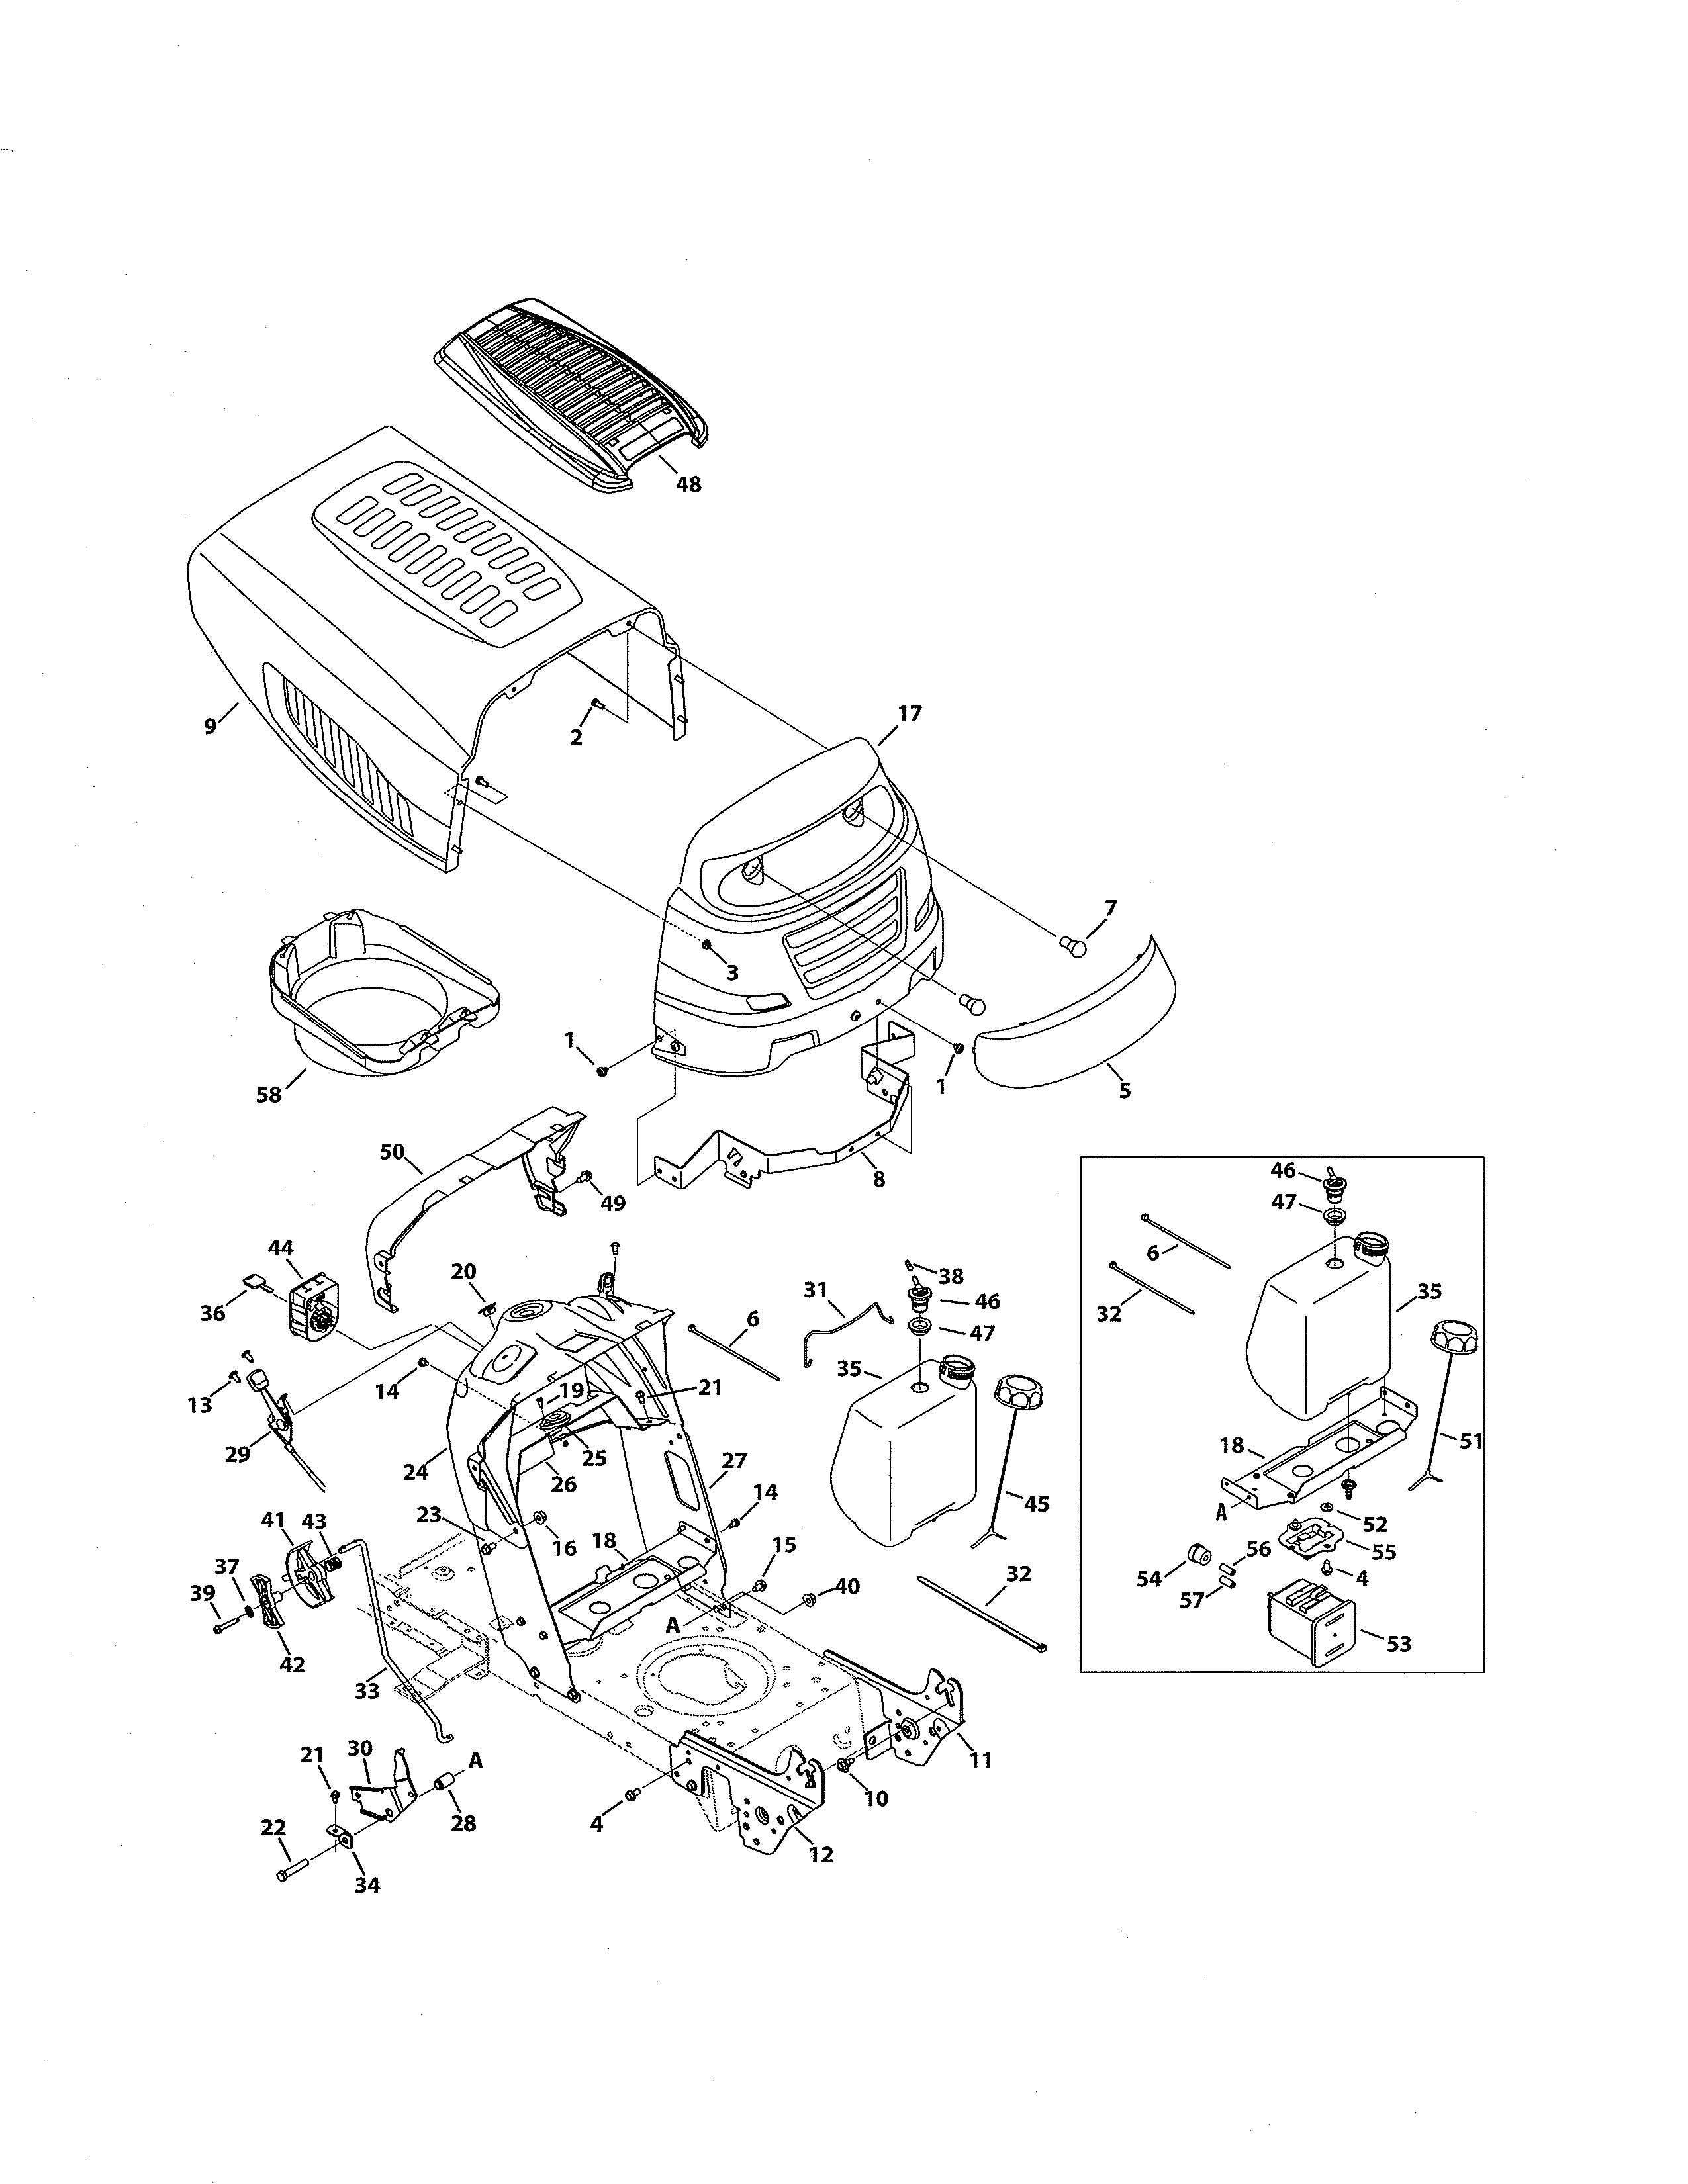 Looking for MTD model 13AO772S055 front-engine lawn